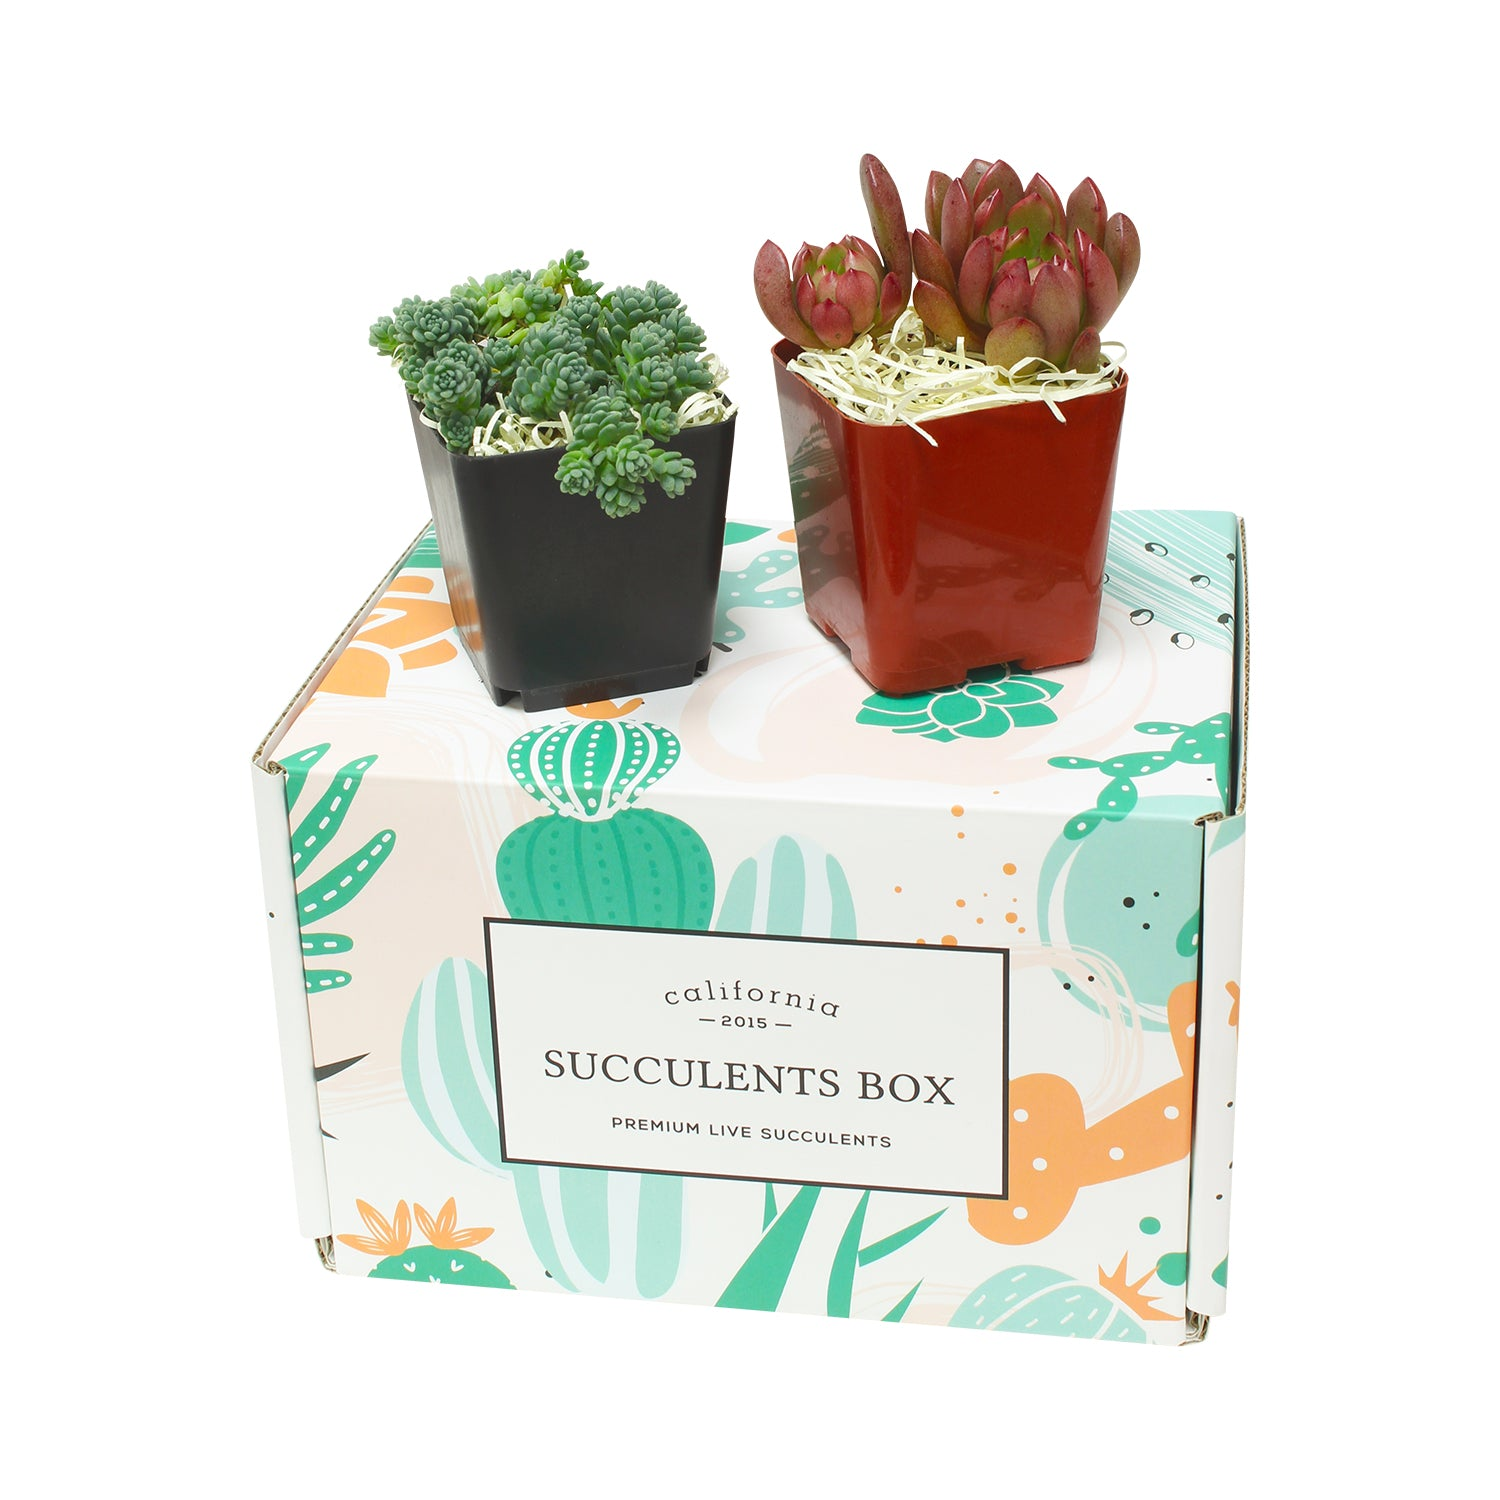 Succulent Subscription Boxes, Succulents Box Monthly, Succulents for Sale, Succulents Box with Care Guide, Cactus Boxes, Succulent Plant